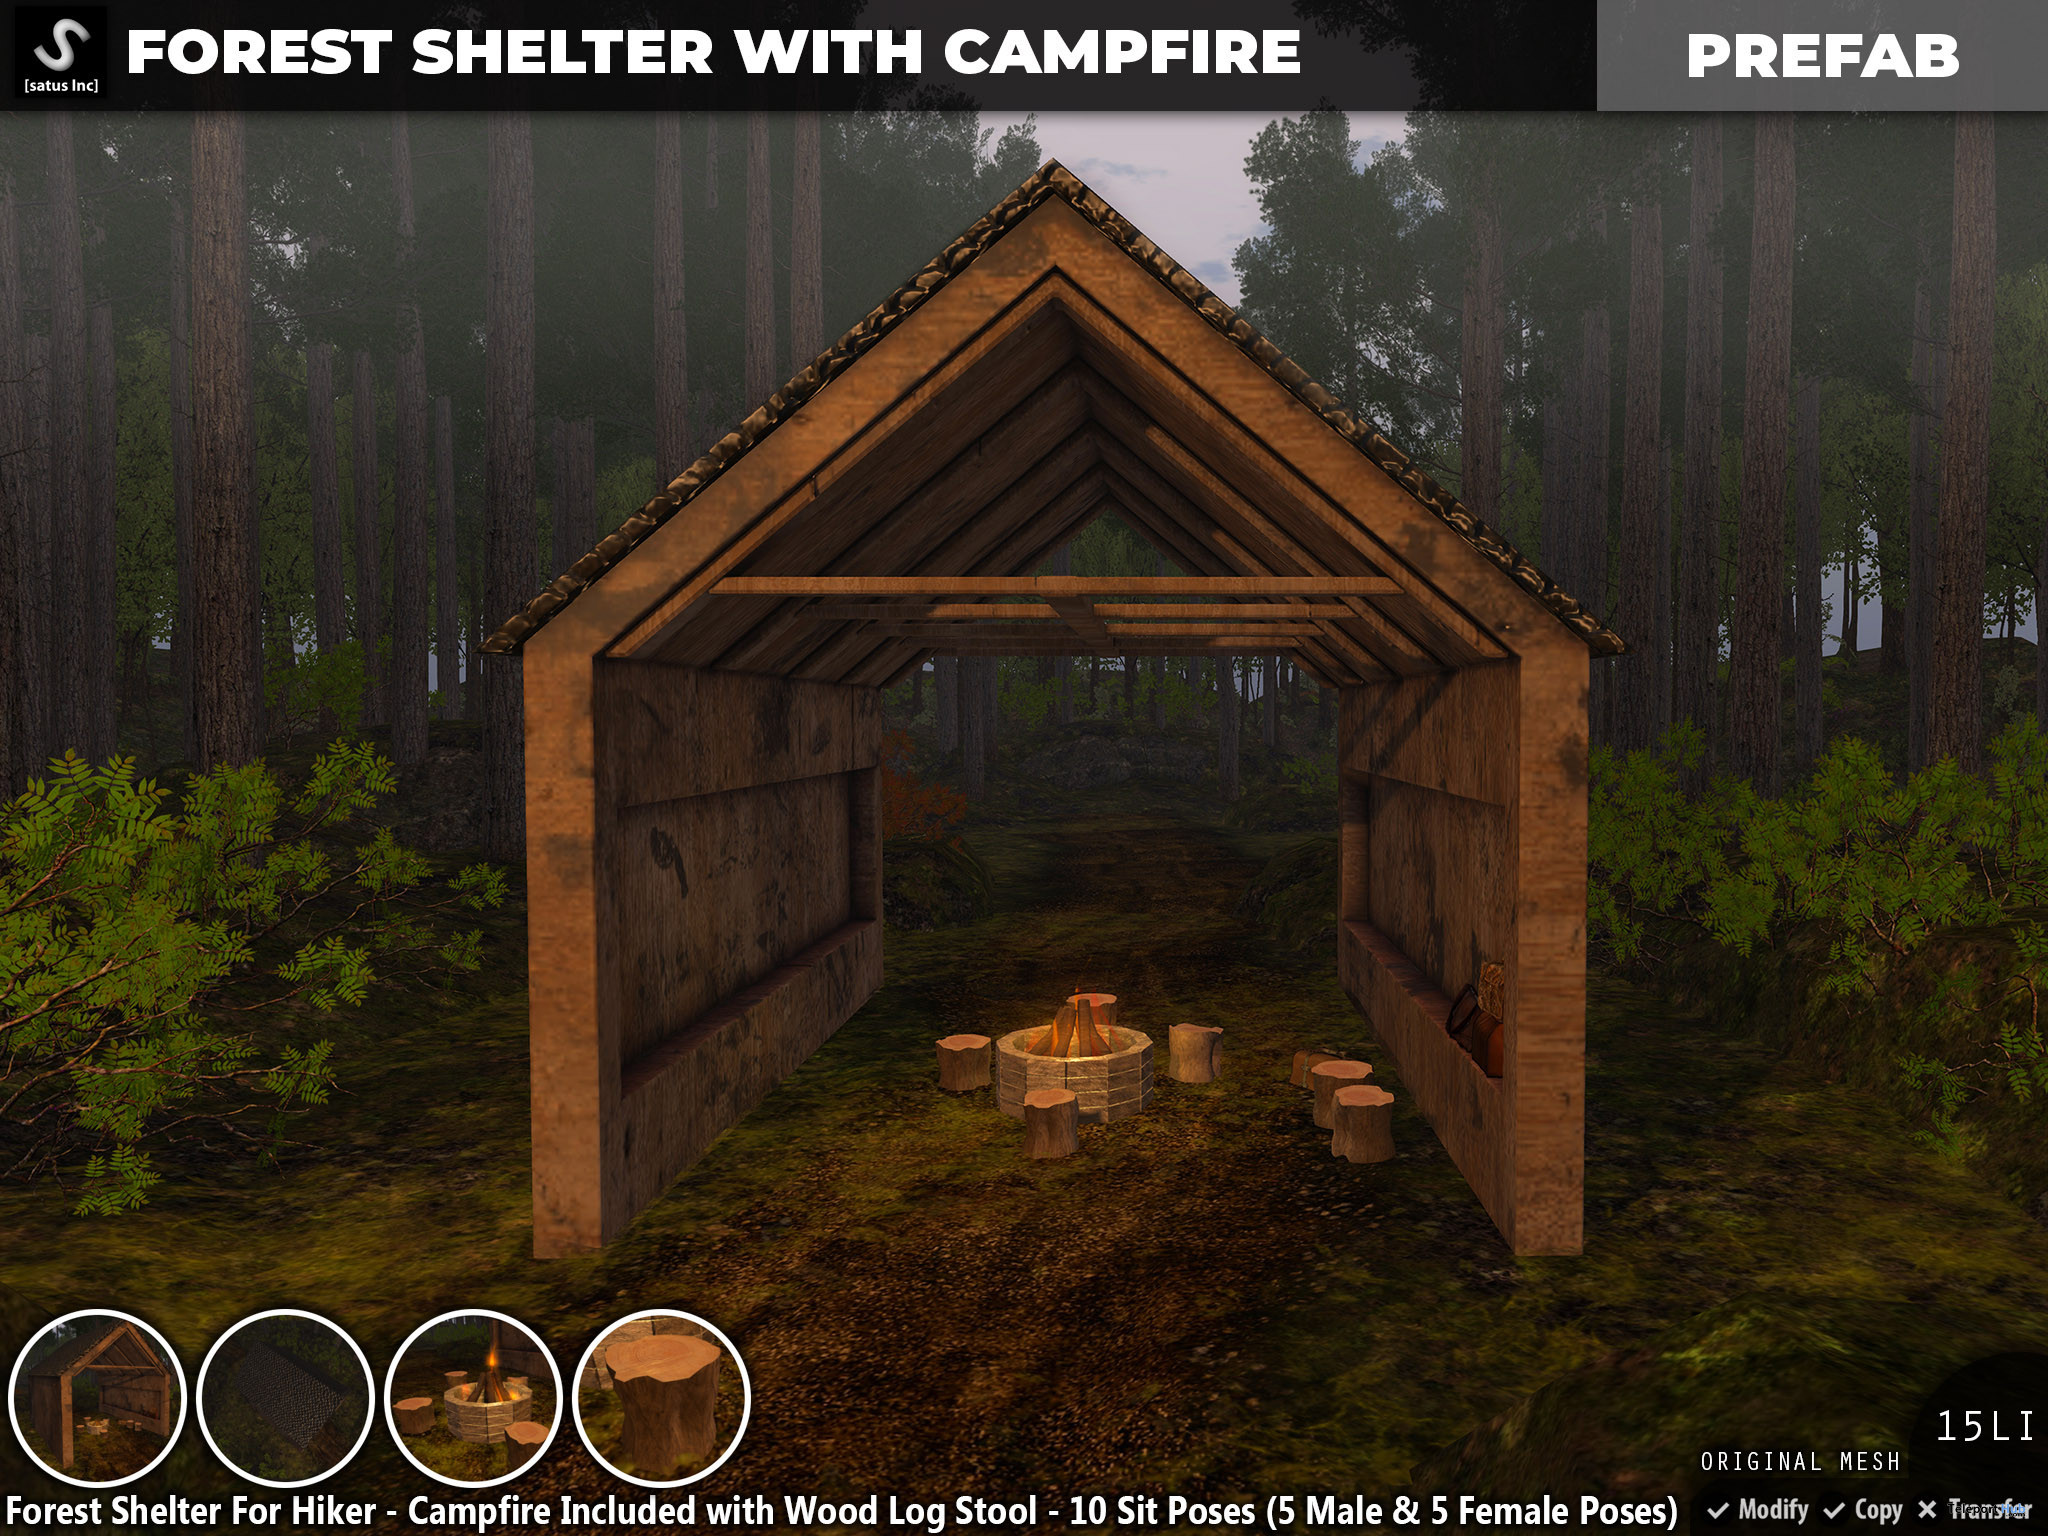 New Release: Forest Shelter With Campfire by [satus Inc] - Teleport Hub - teleporthub.com